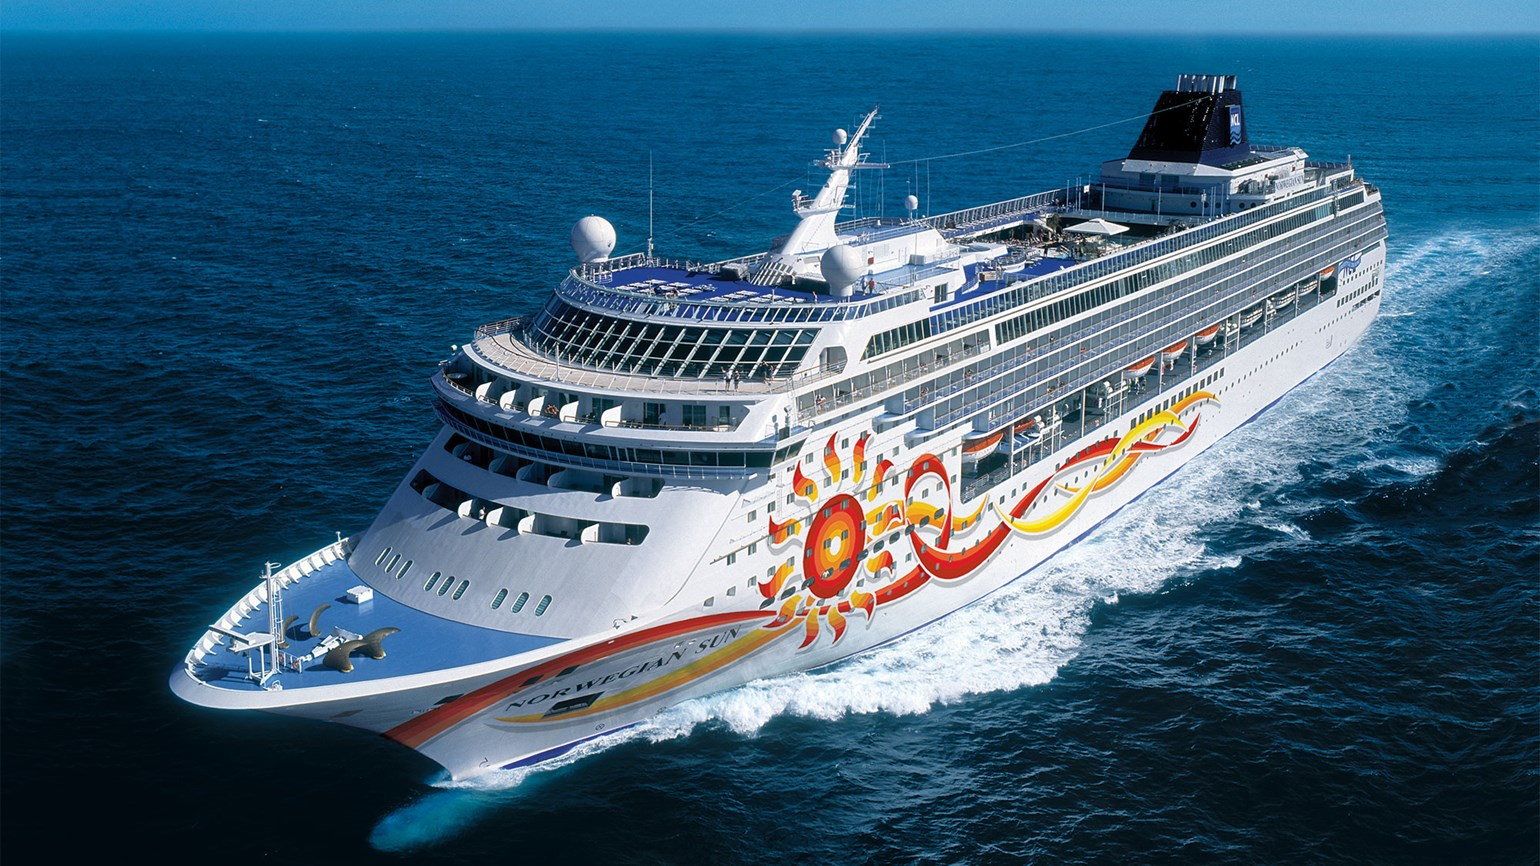 Norwegian Suns Cuba Cruises Go On Sale With Promotion Travel Weekly - Go on a cruise